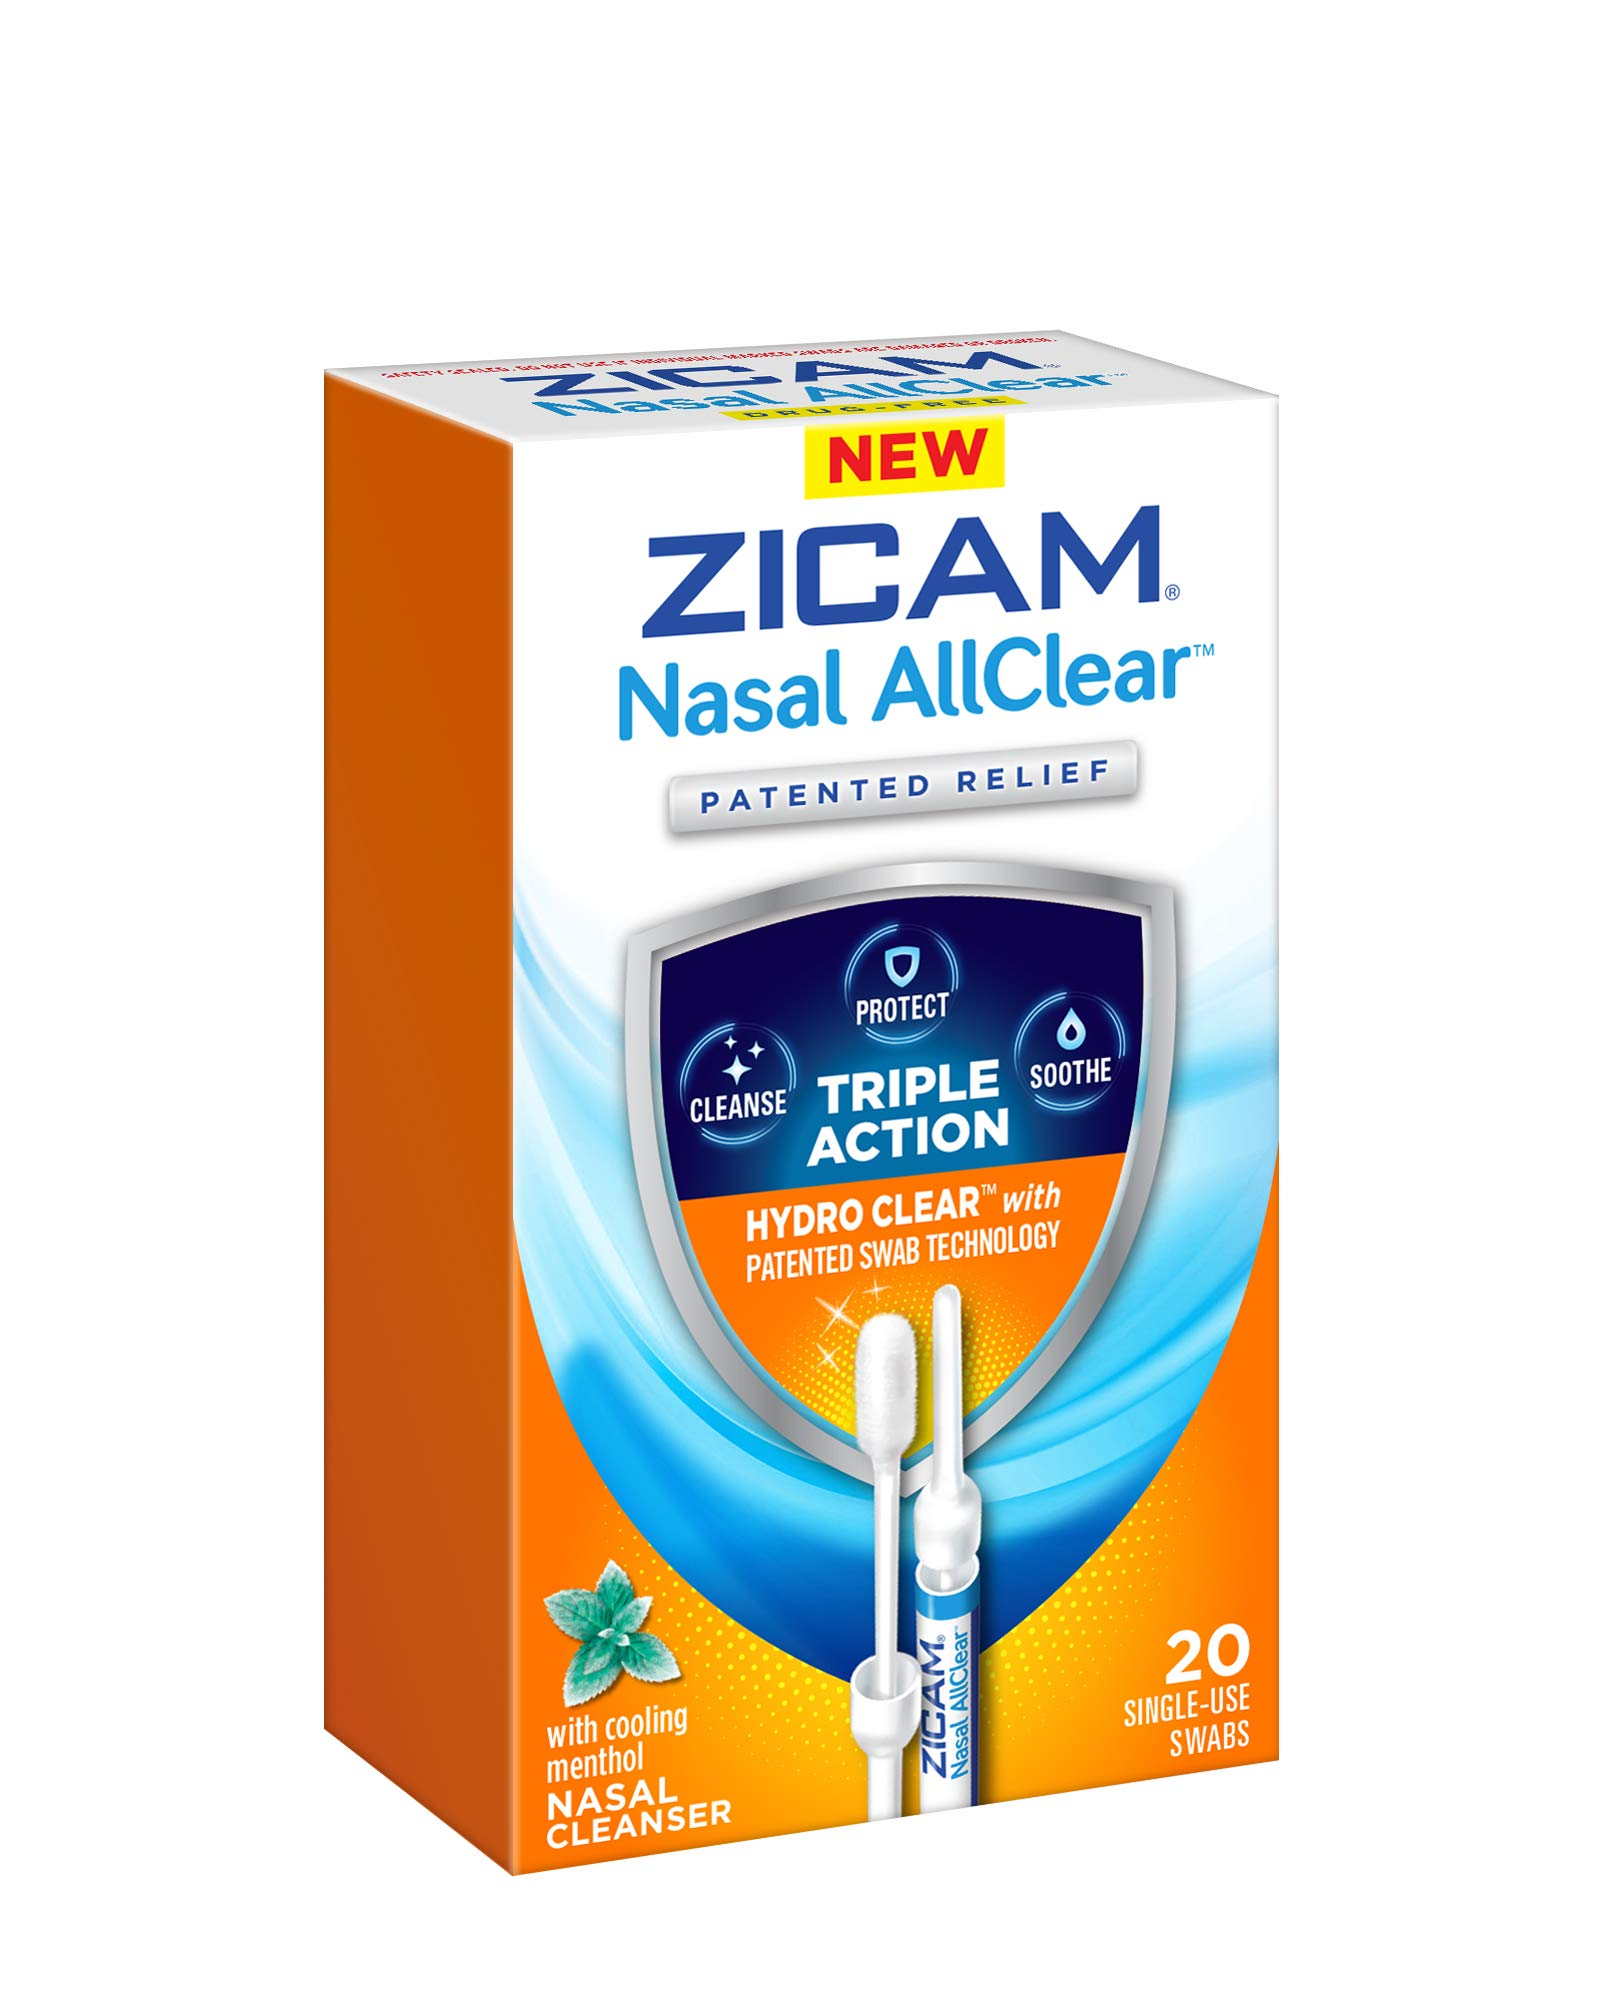 ZICAM Nasal AllClear Triple Action Nasal Cleanser with Cooling Menthol, 20 Count by Zicam